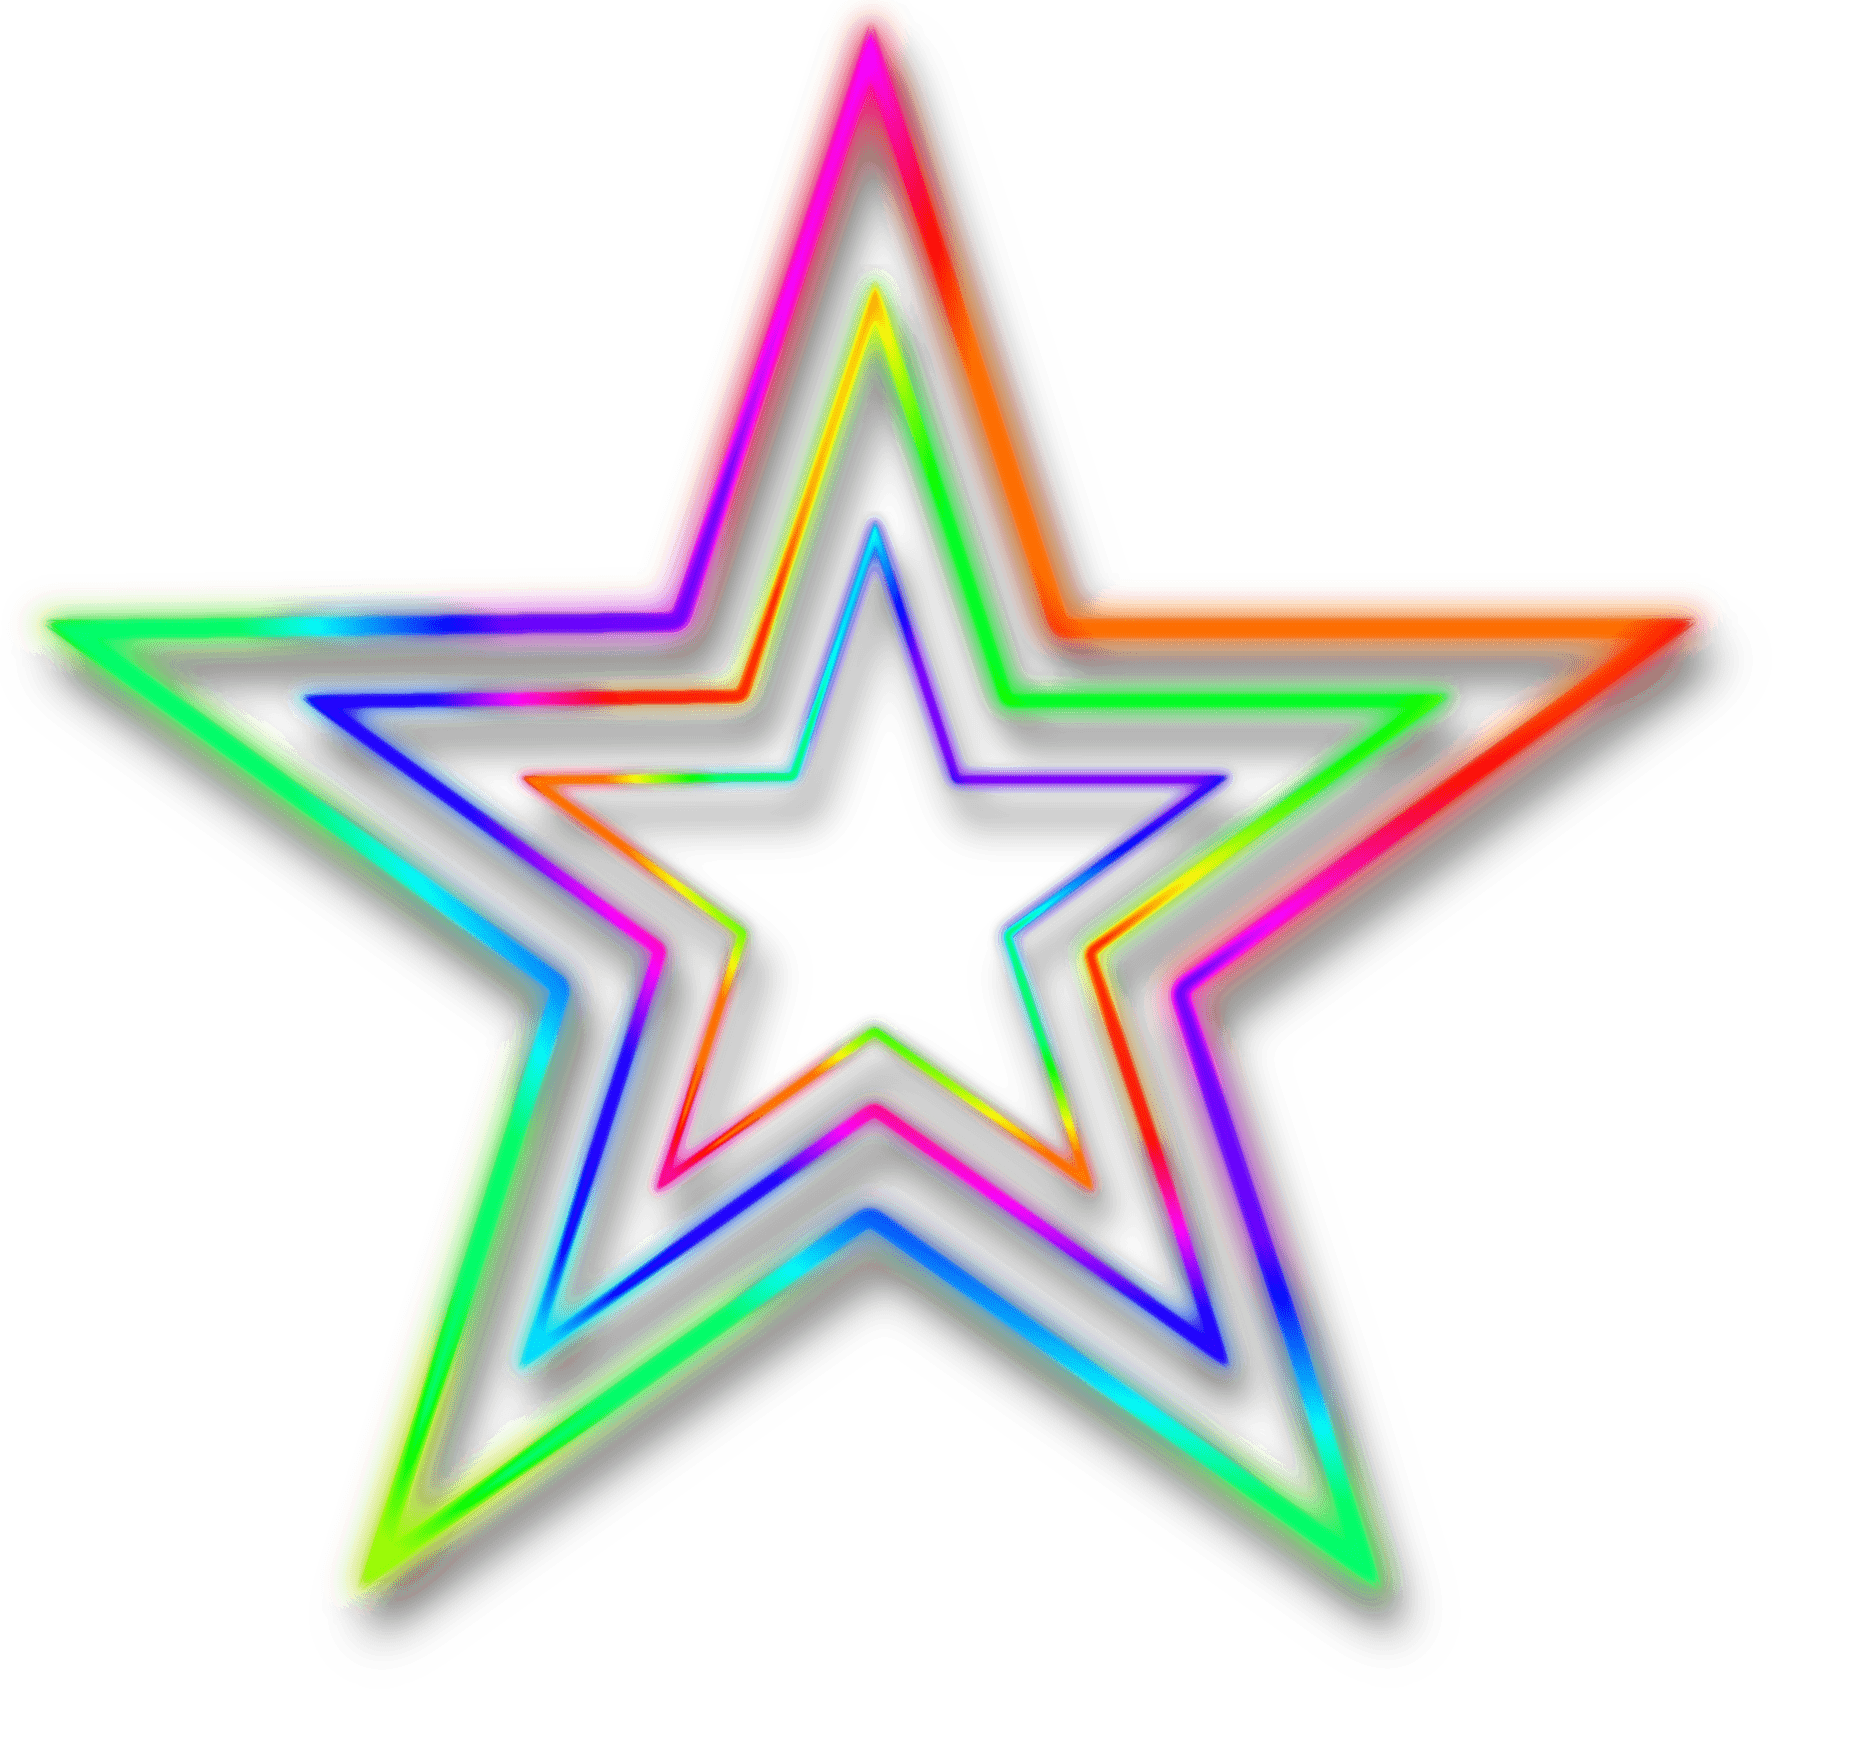 Star transparent stickpng. Neon background png vector transparent stock